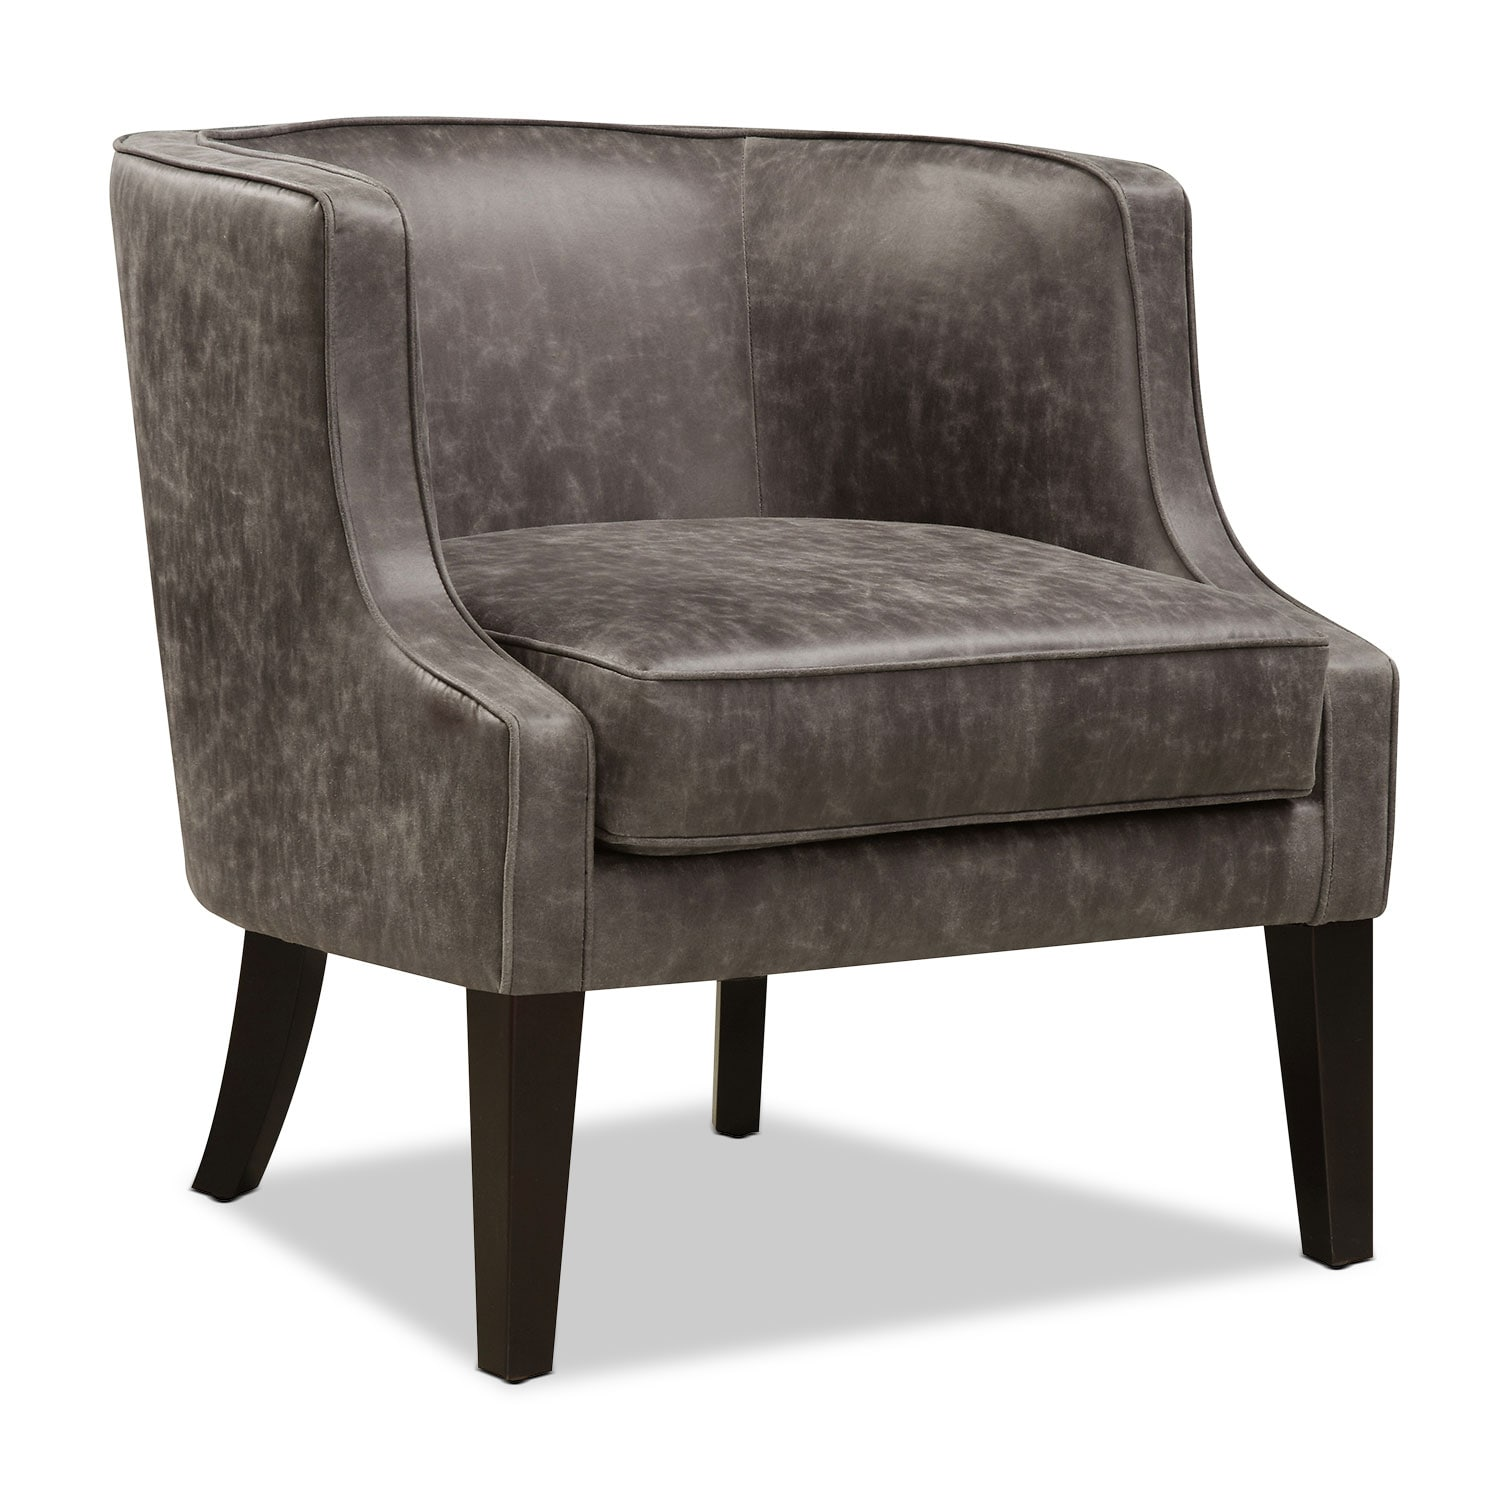 Living Room Furniture - Casey Accent Chair - Gray